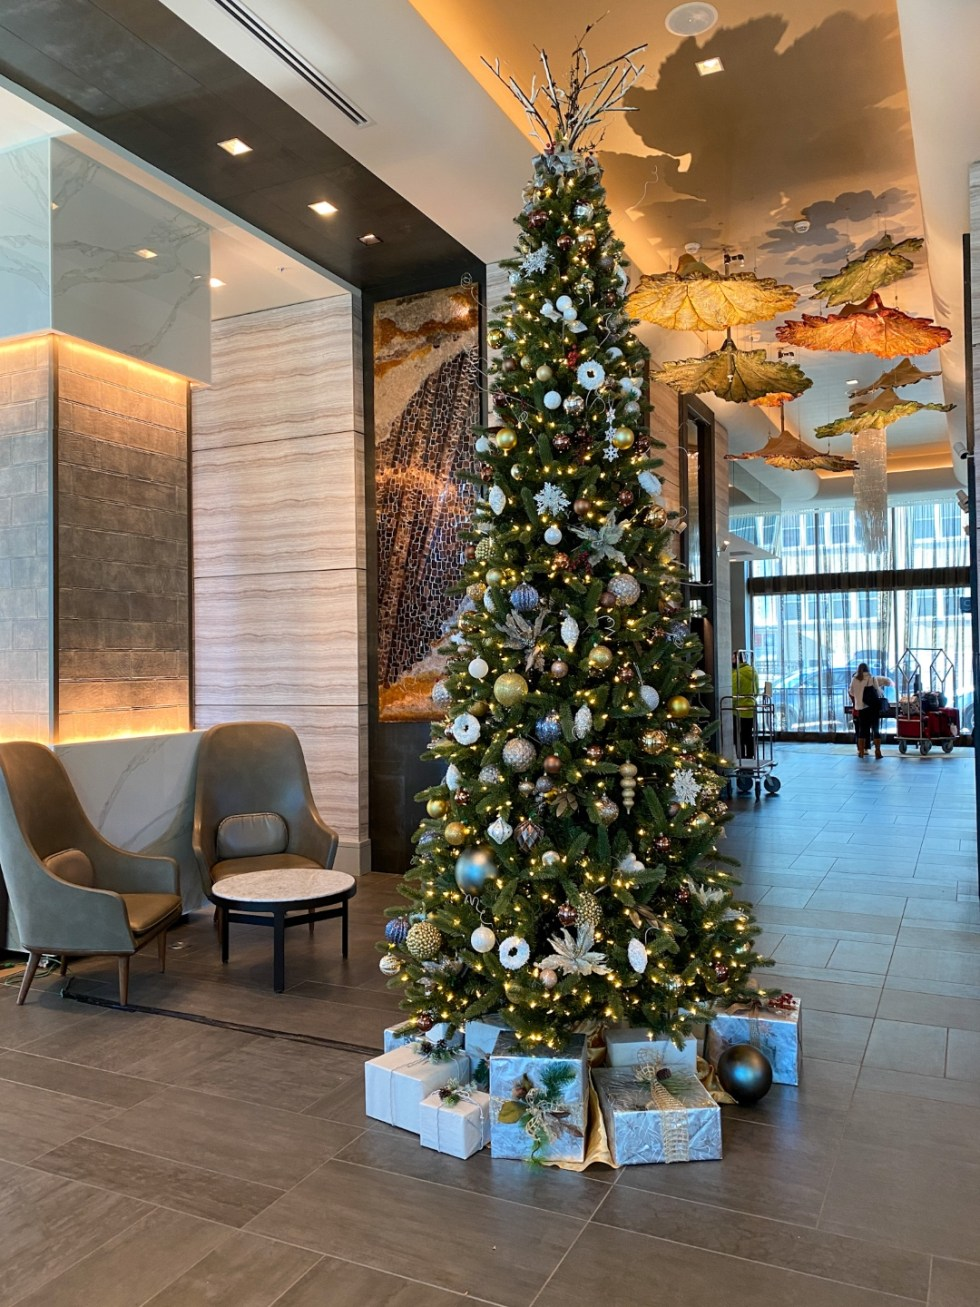 Christmas in Asheville: a Weekend Getaway During the Holidays - I'm Fixin' To - @imfixintoblog |Christmas in Asheville NC by popular NC lifestyle blog, I'm Fixin' To: image of a Christmas tree in the Kimpton hotel lobby.